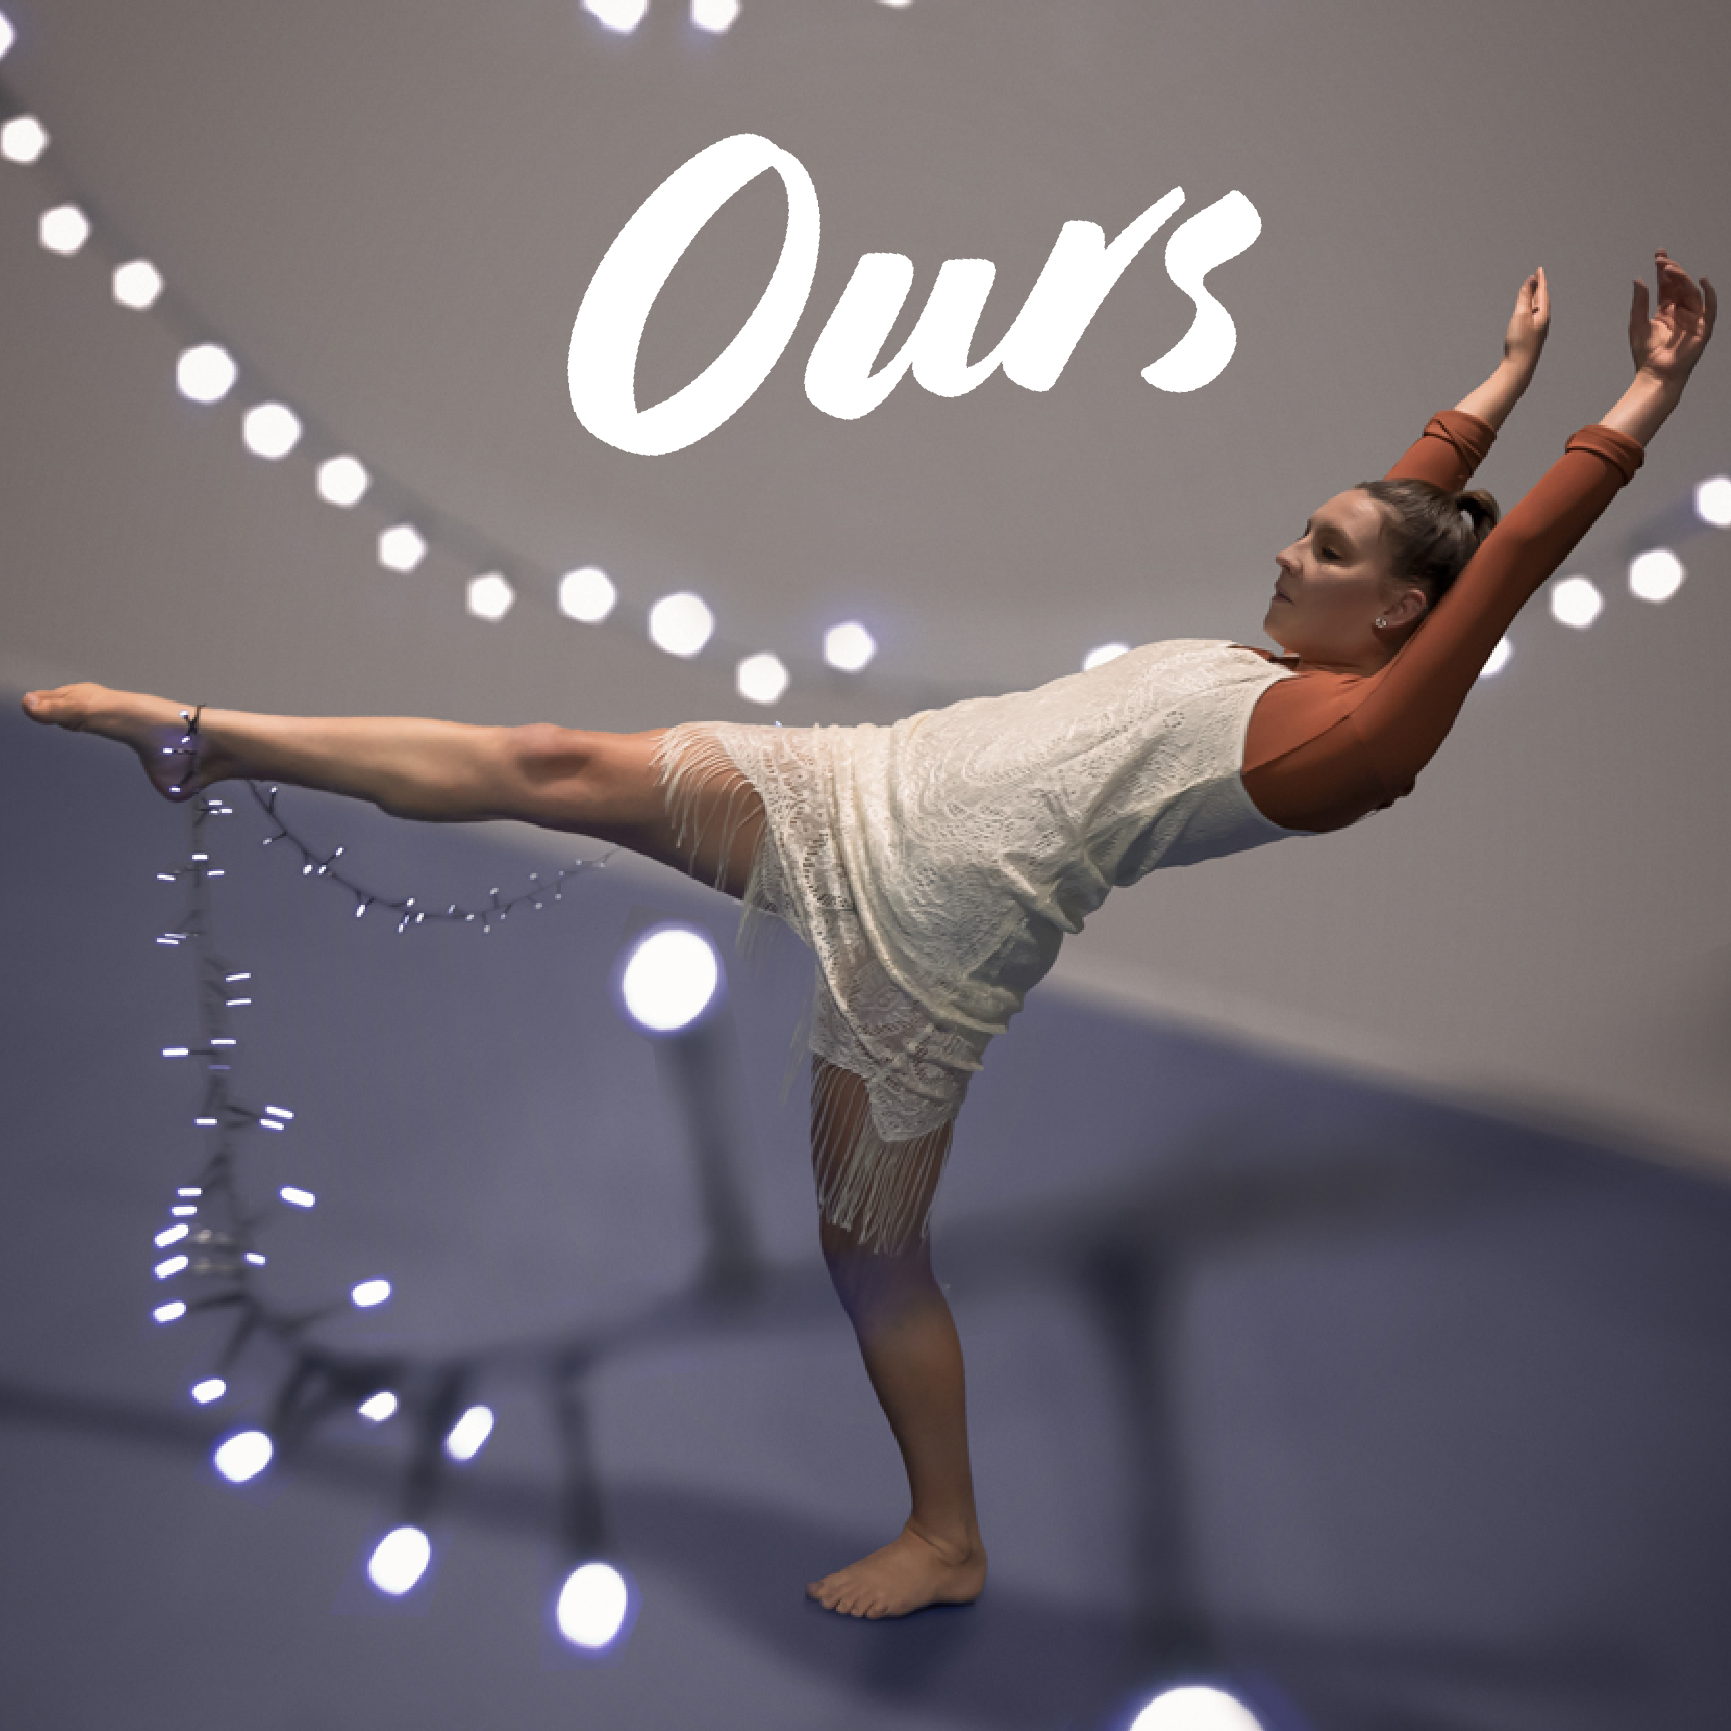 Ours (2019)   Courthouse Youth Arts, Bluestone Church Arts Space & Ballaarat Mechanics' Institute